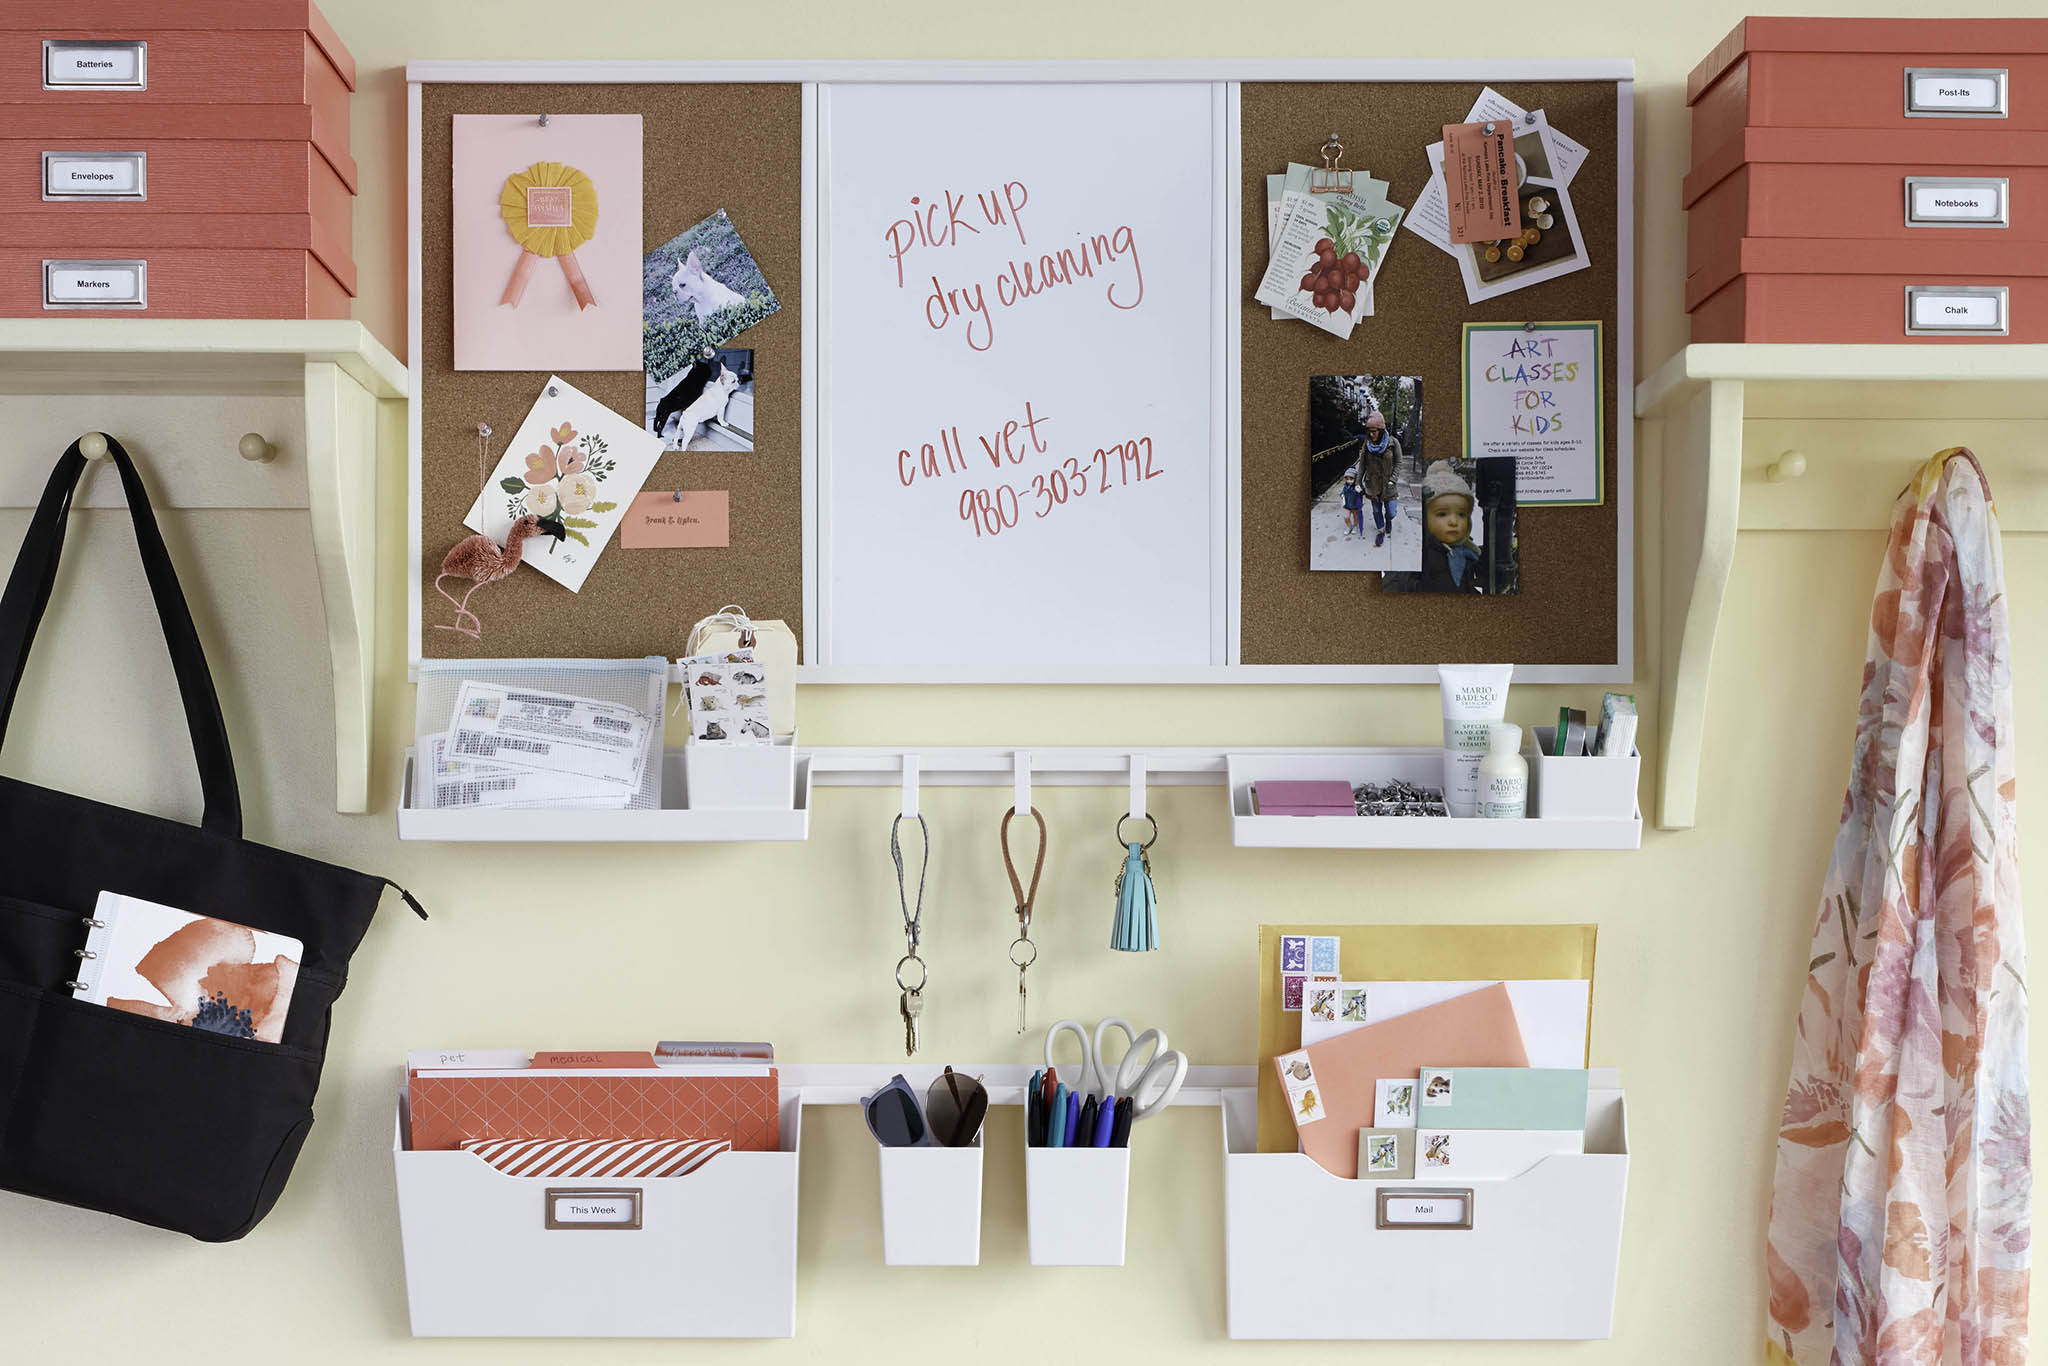 Martha Stewart office supplies available at Staples